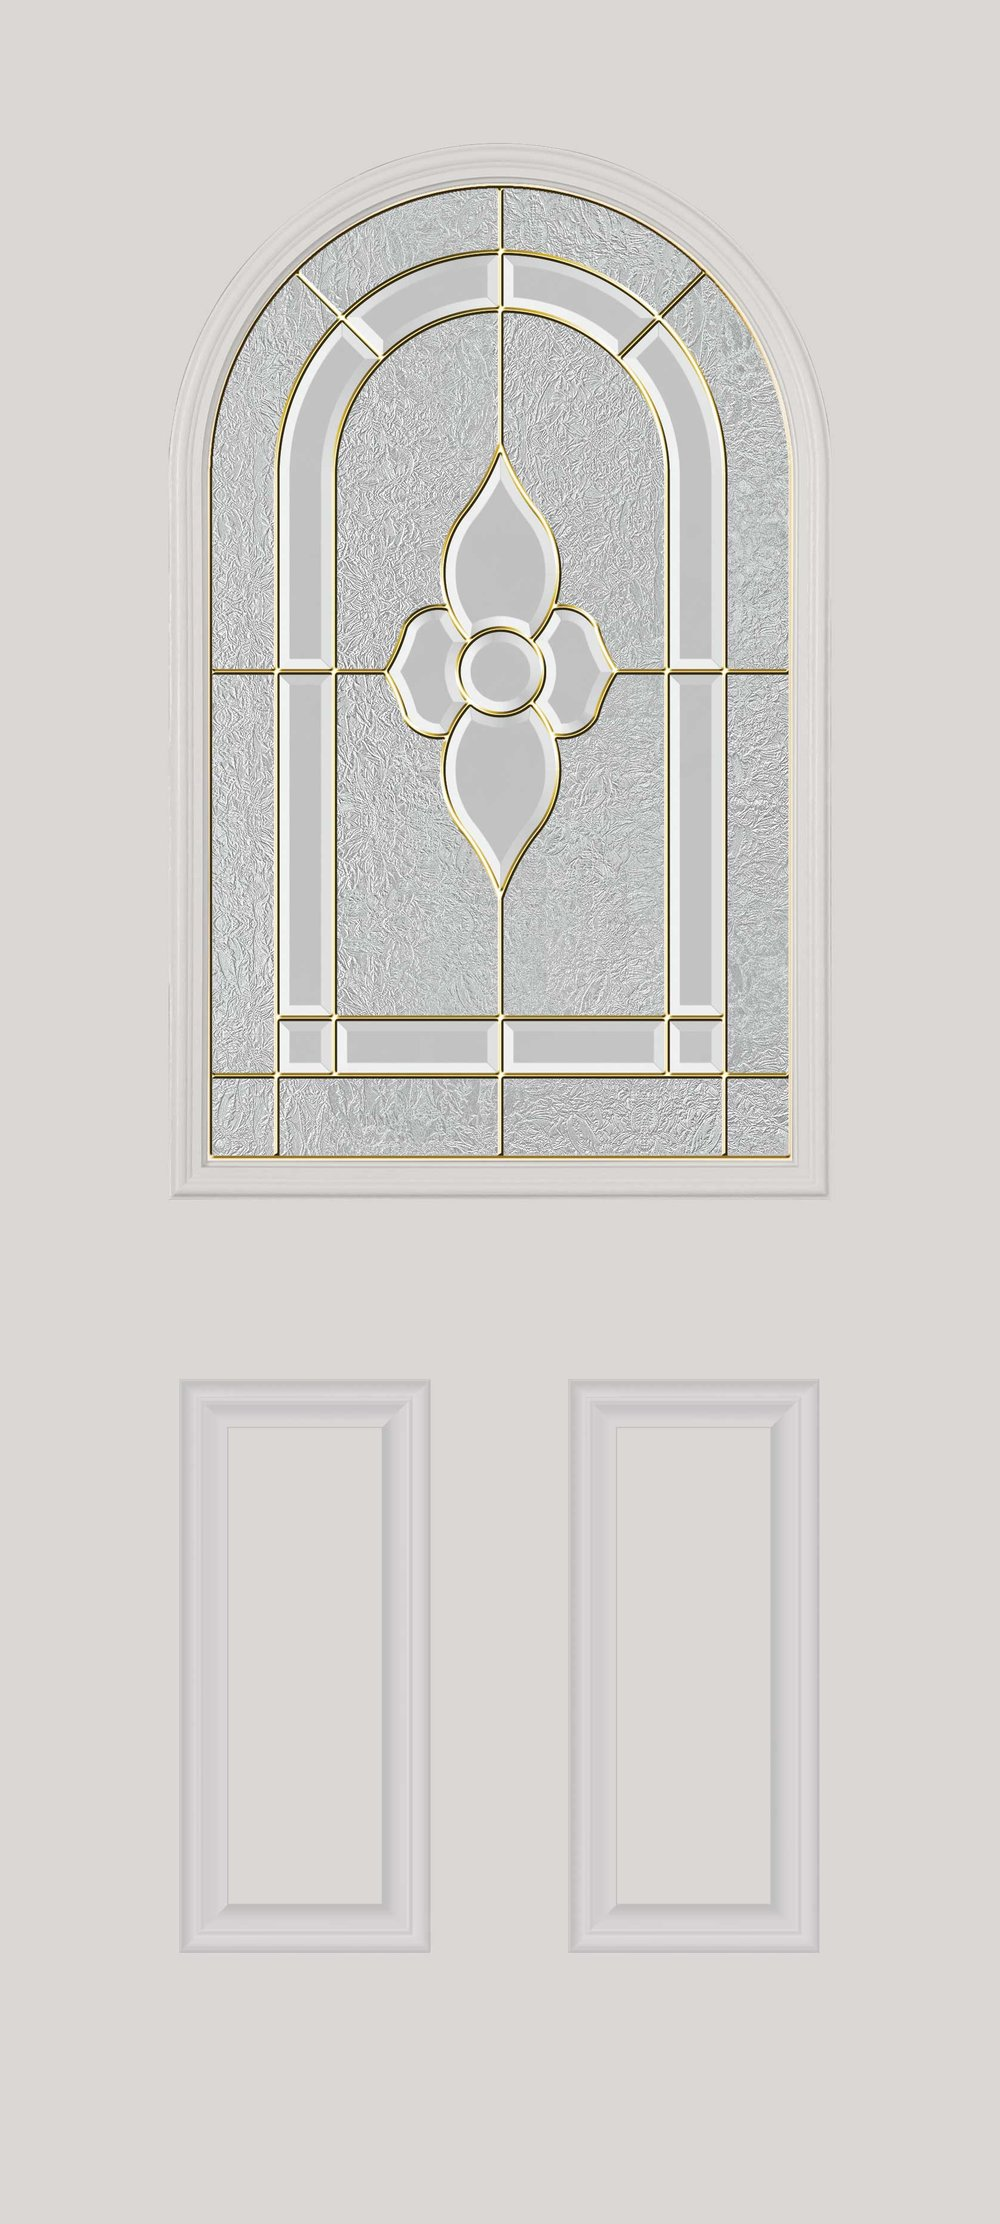 Half-glass door with round top Glass: decorative with nickel caming